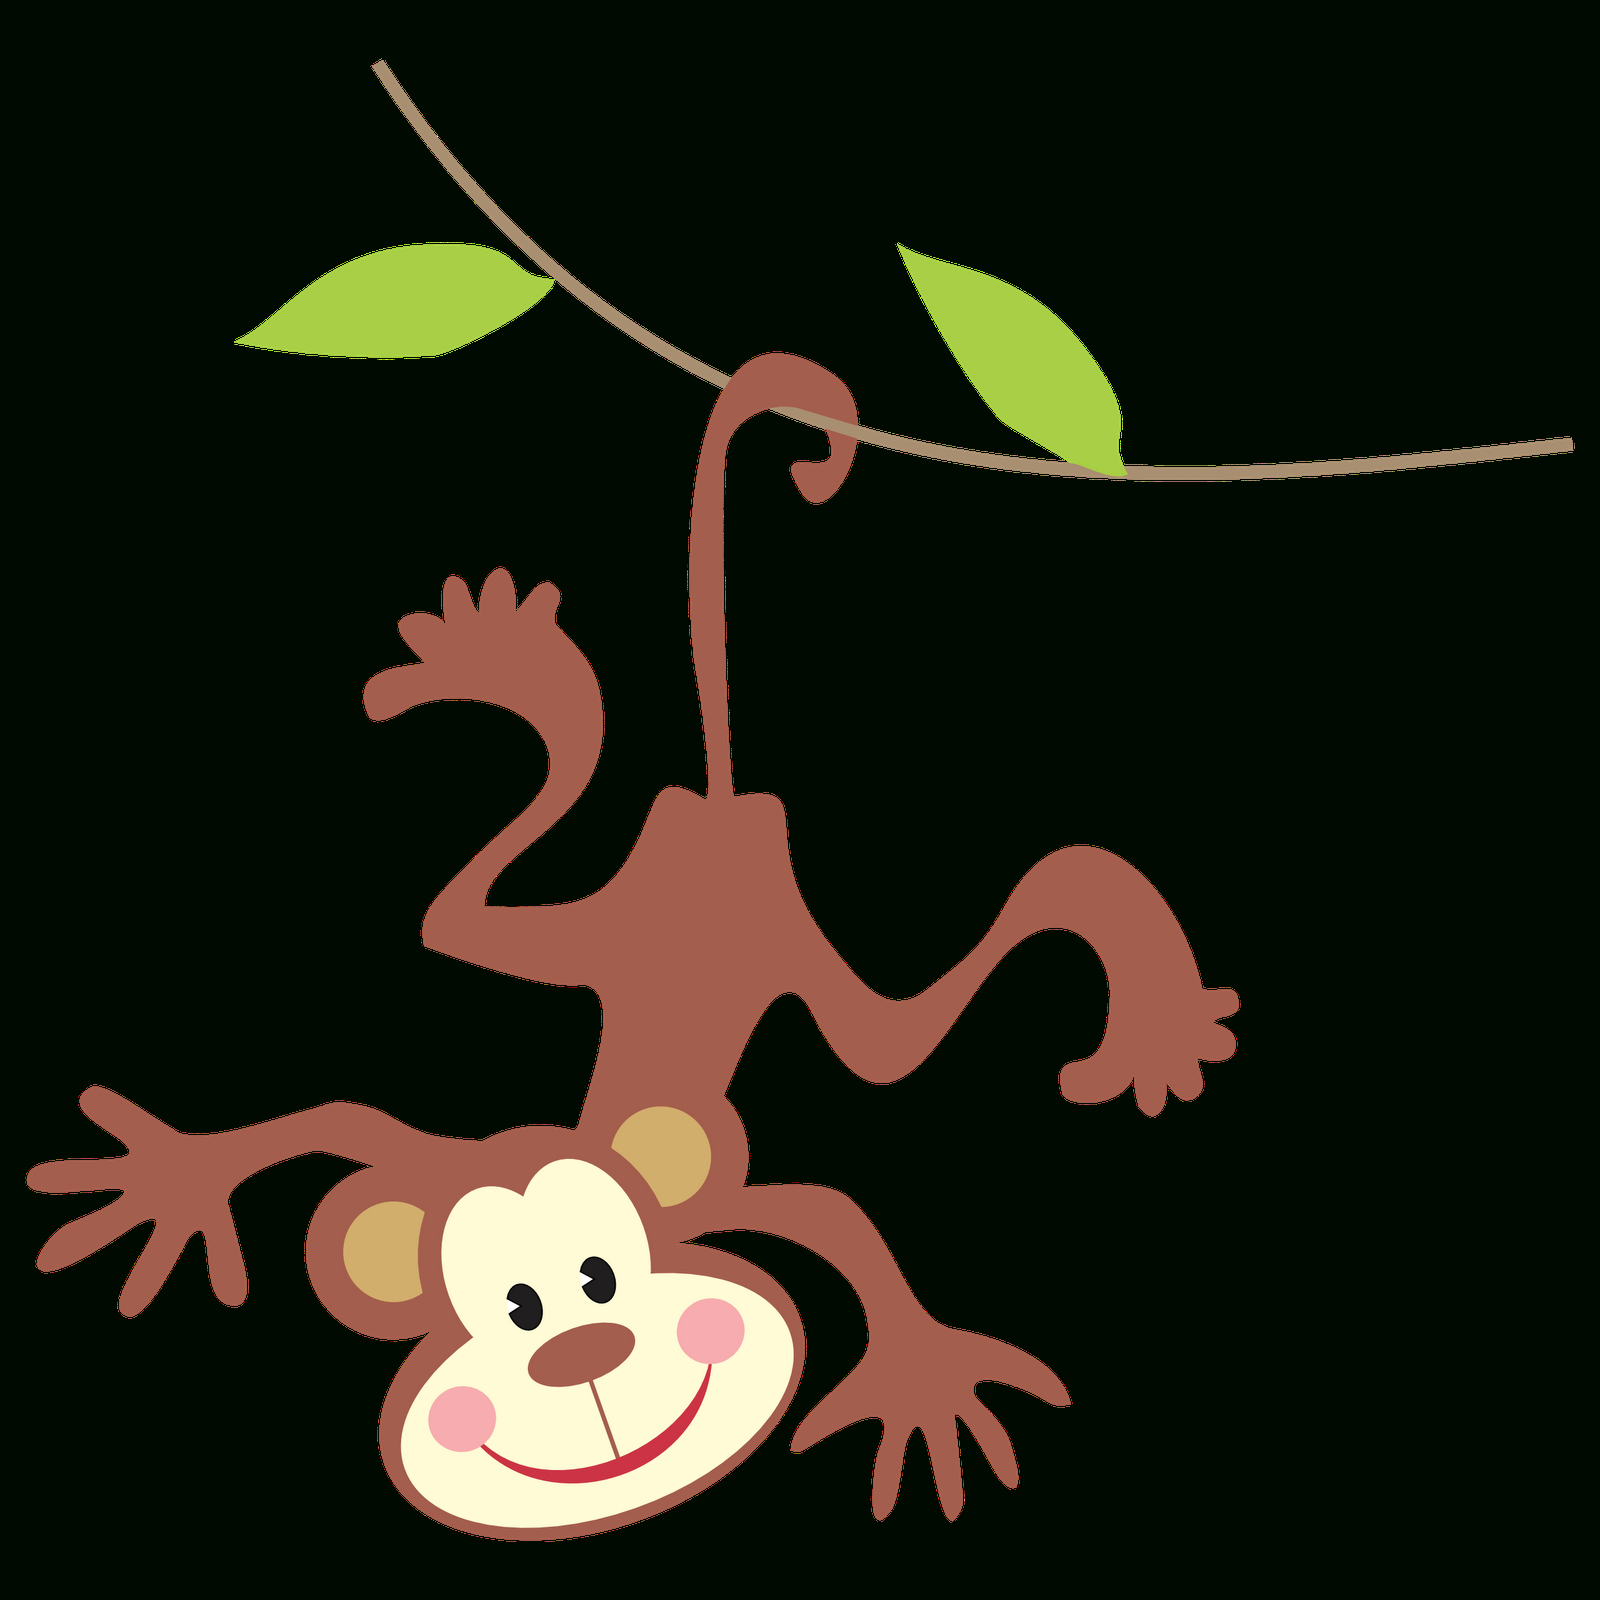 Free Free Pictures Of Monkeys, Download Free Clip Art, Free Clip Art - Free Printable Sock Monkey Clip Art